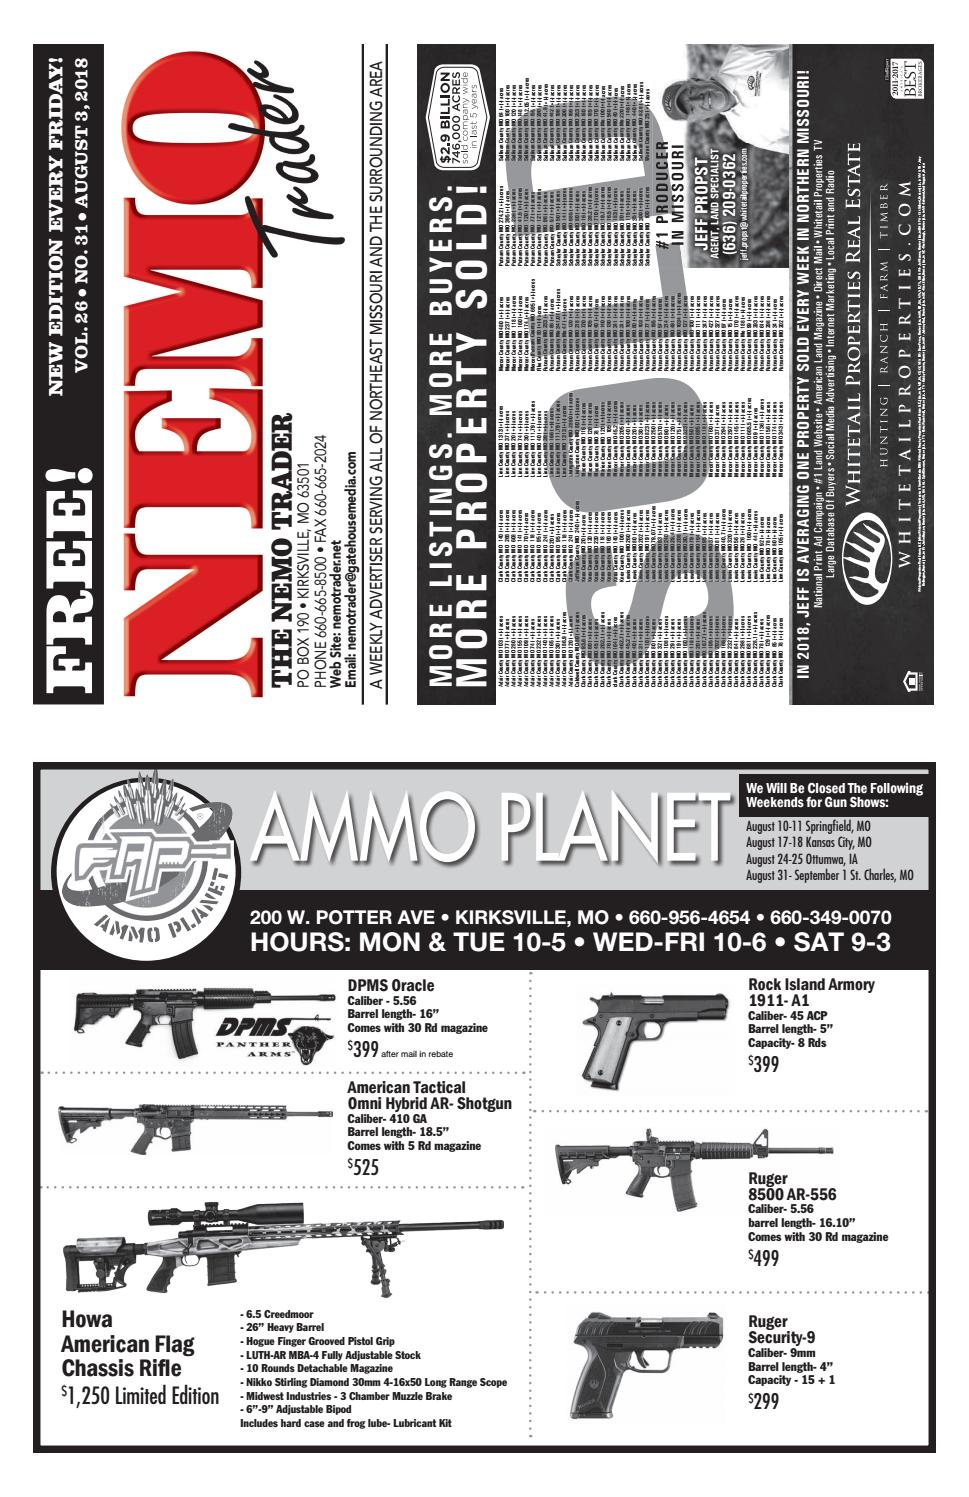 NEMO Trader Aug  3, 2018 by NEMO Trader - issuu